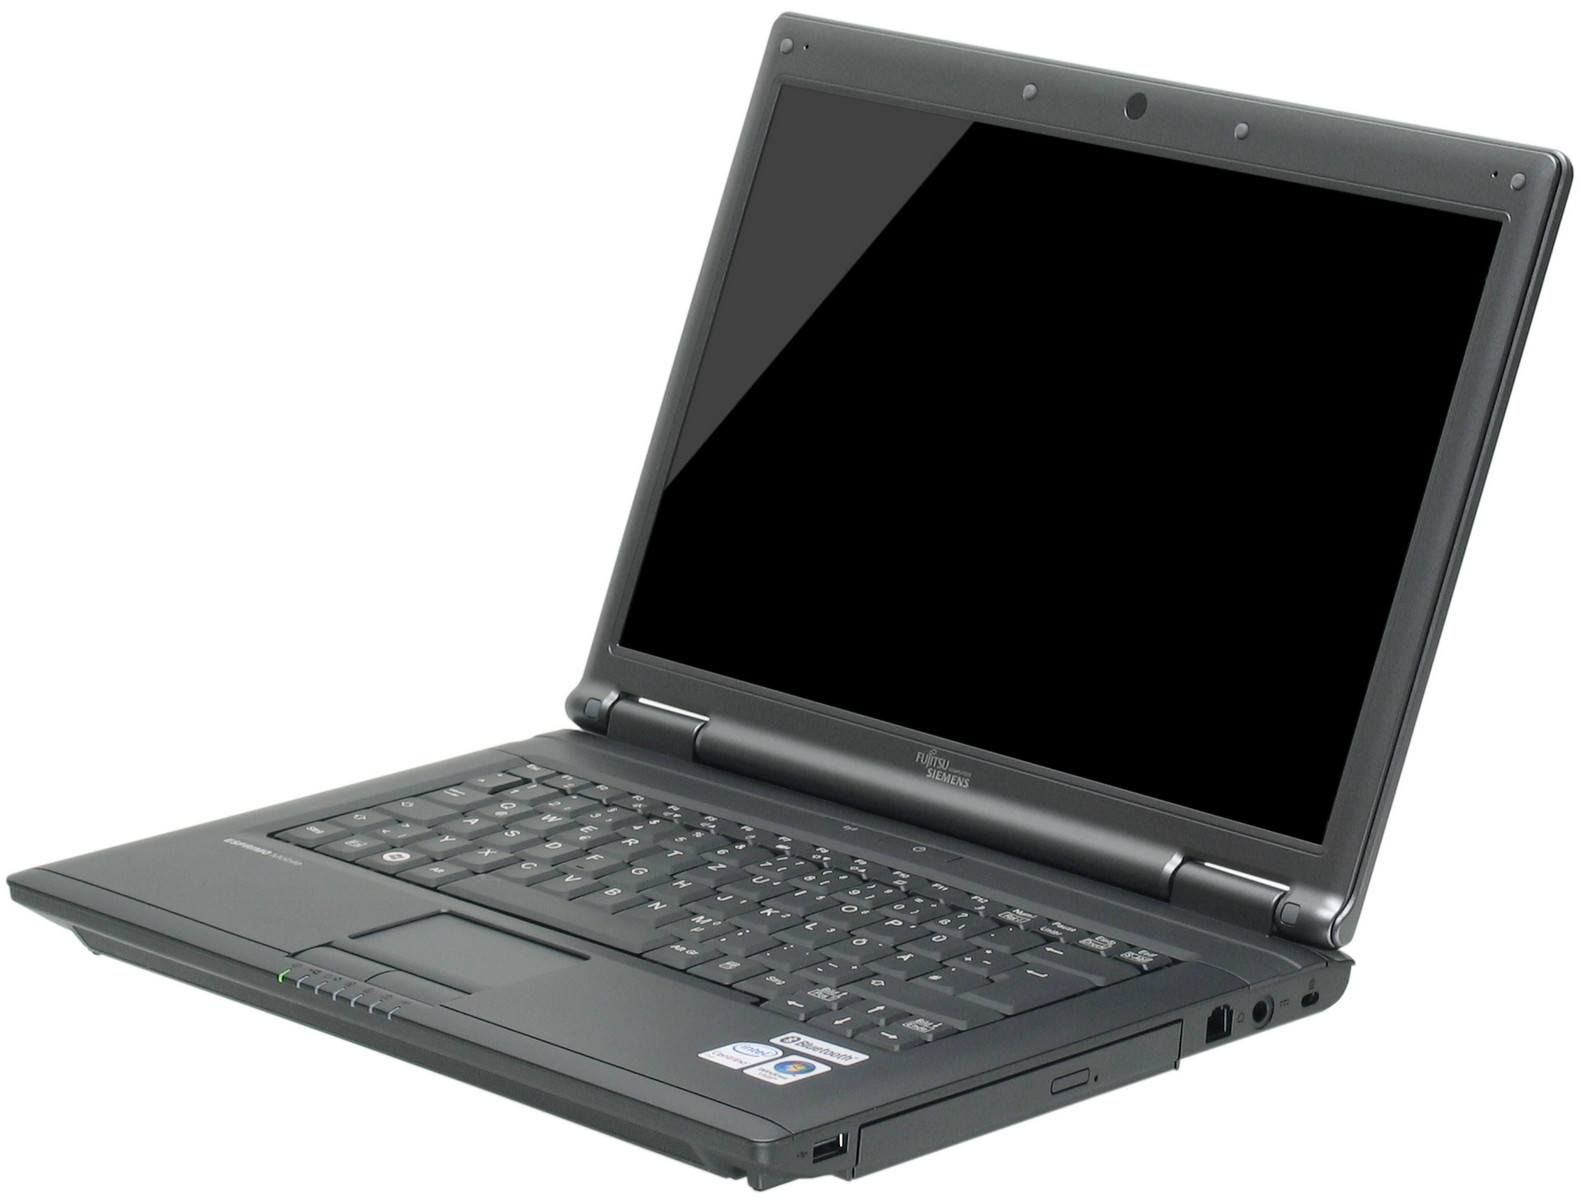 FUJITSU SIEMENS M9400 WINDOWS DRIVER DOWNLOAD